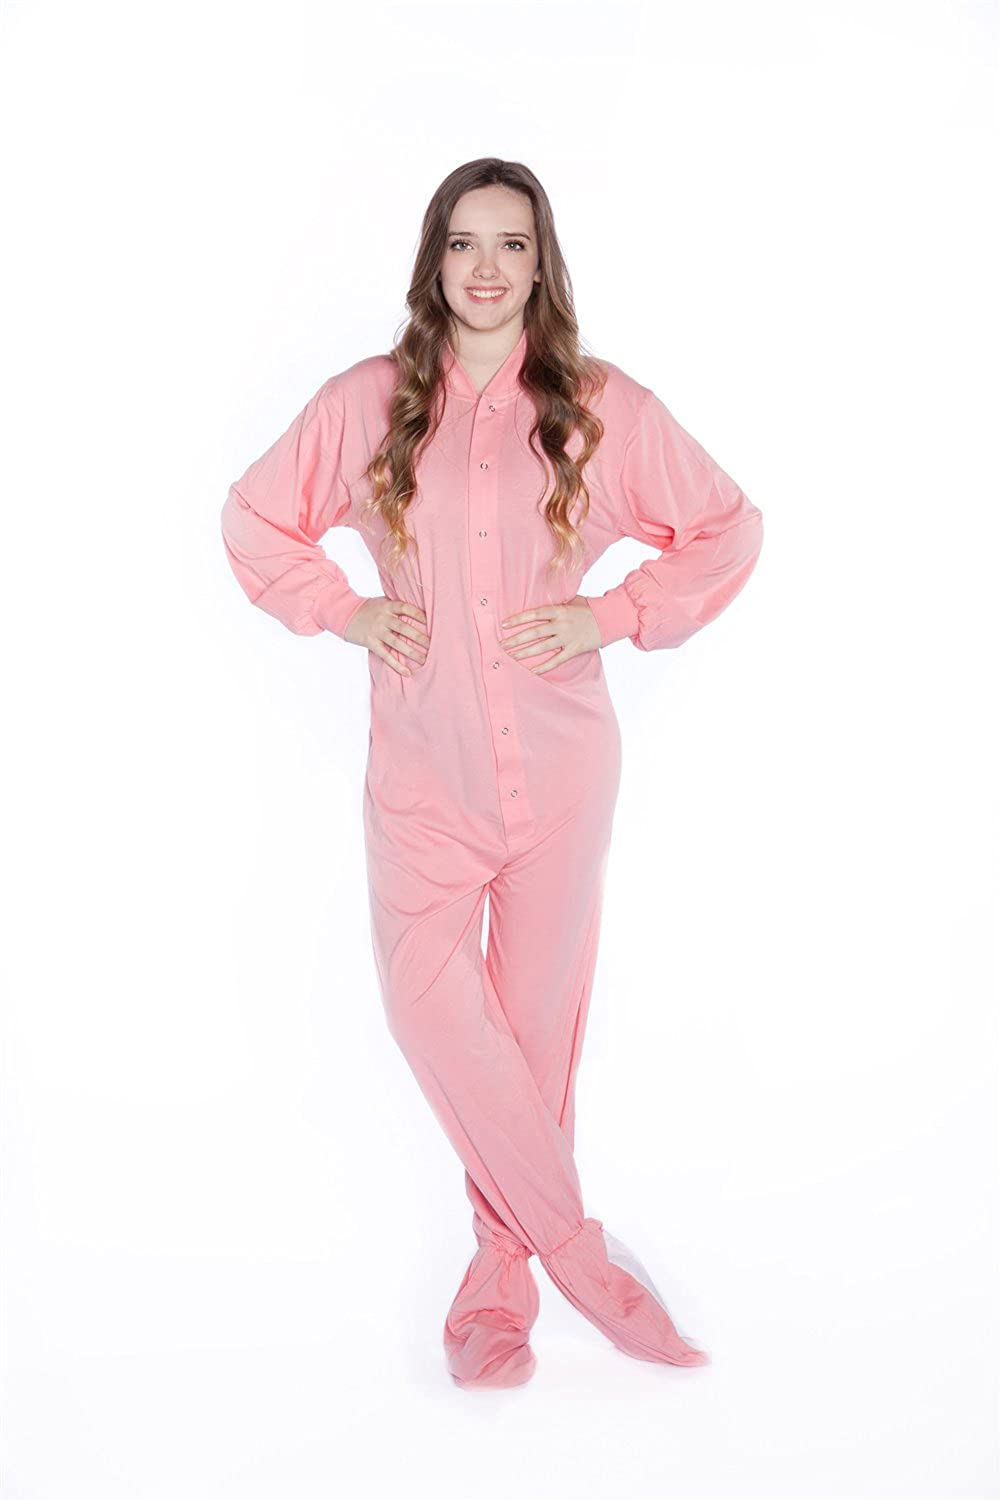 092fdf0a14ed Big Feet Pajama Co. Pink Jersey Knit Adult Footed Pajamas Womens ...